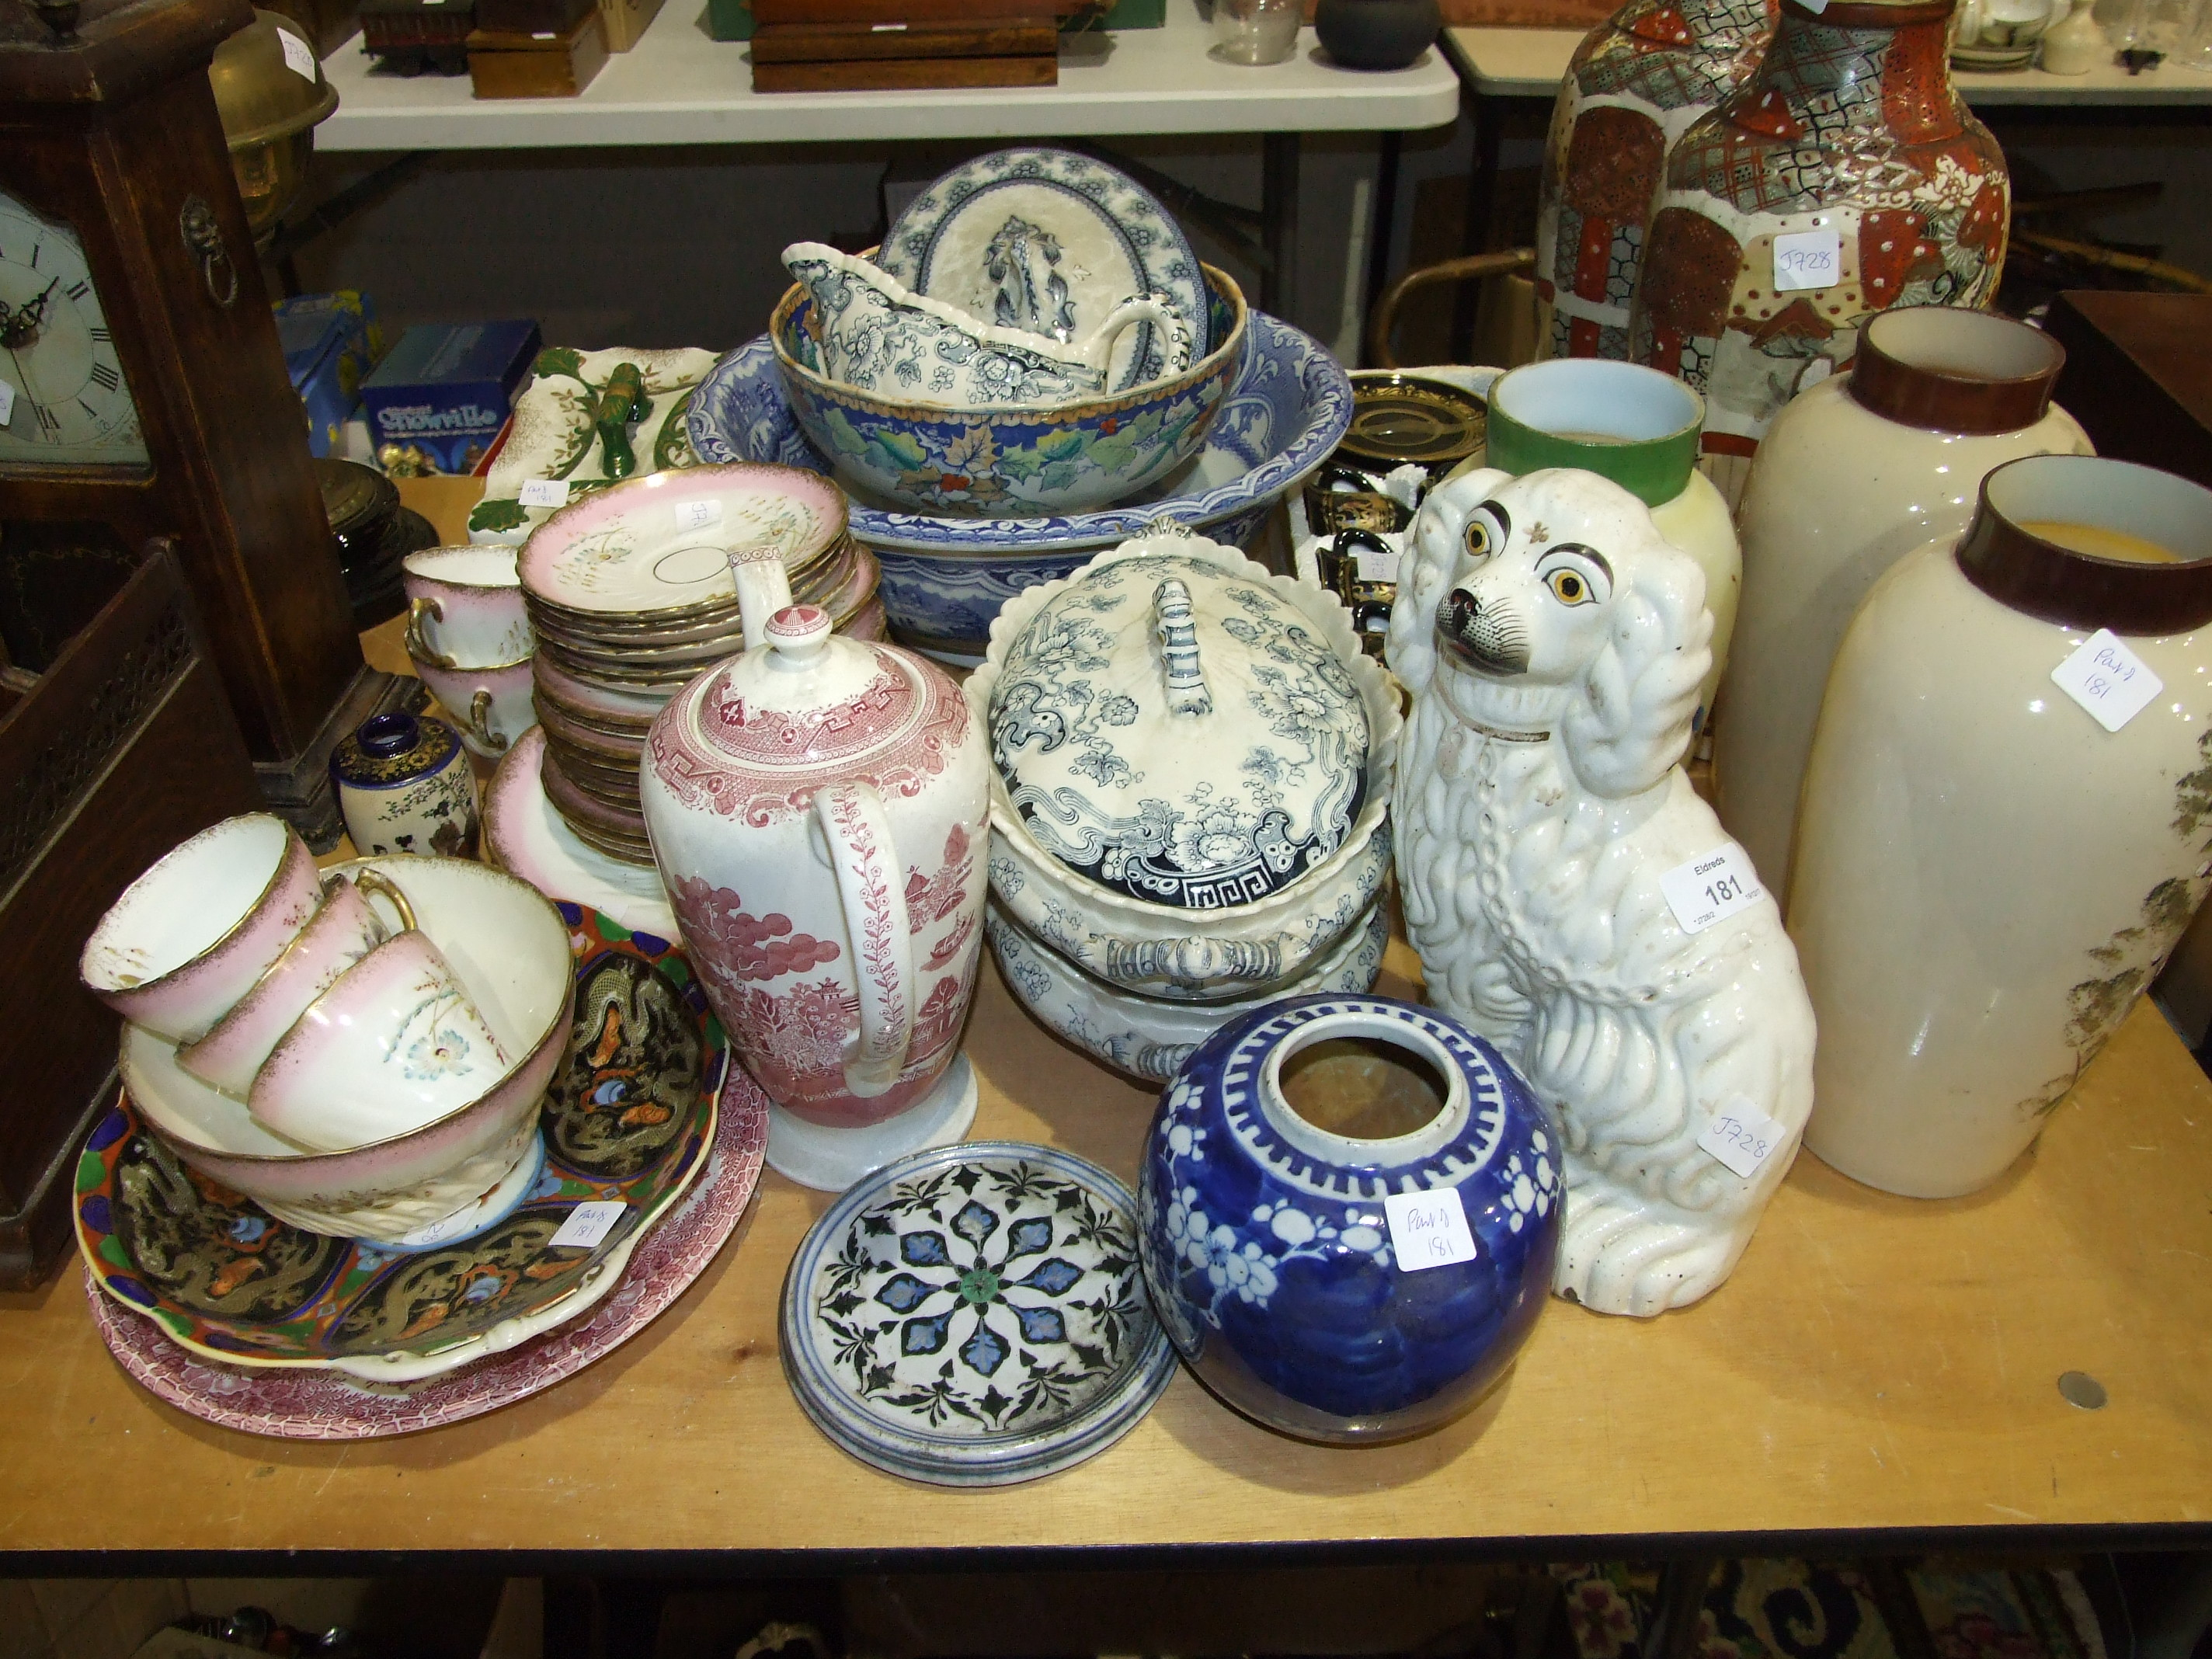 Lot 181 - A 19th century porcelain part-tea service, a Staffordshire dog, various ceramics, glass and